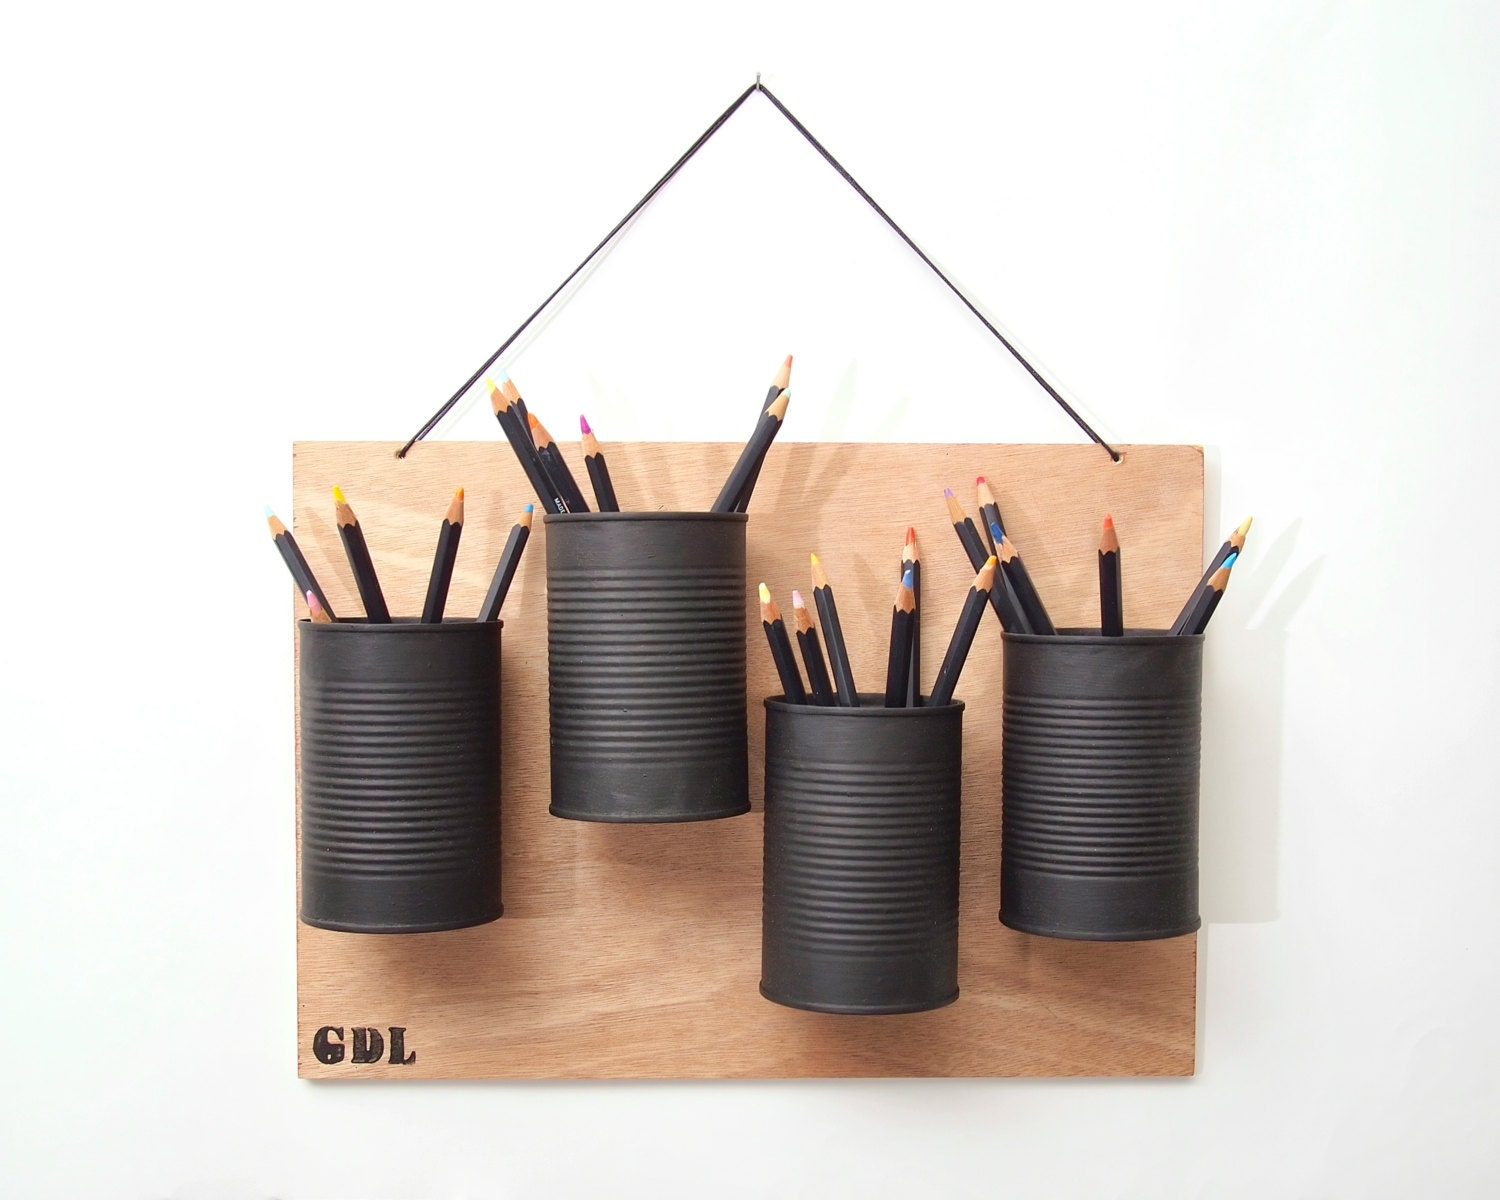 Sale 25 off quatro hanging pencil holder Diy pencil holder for desk